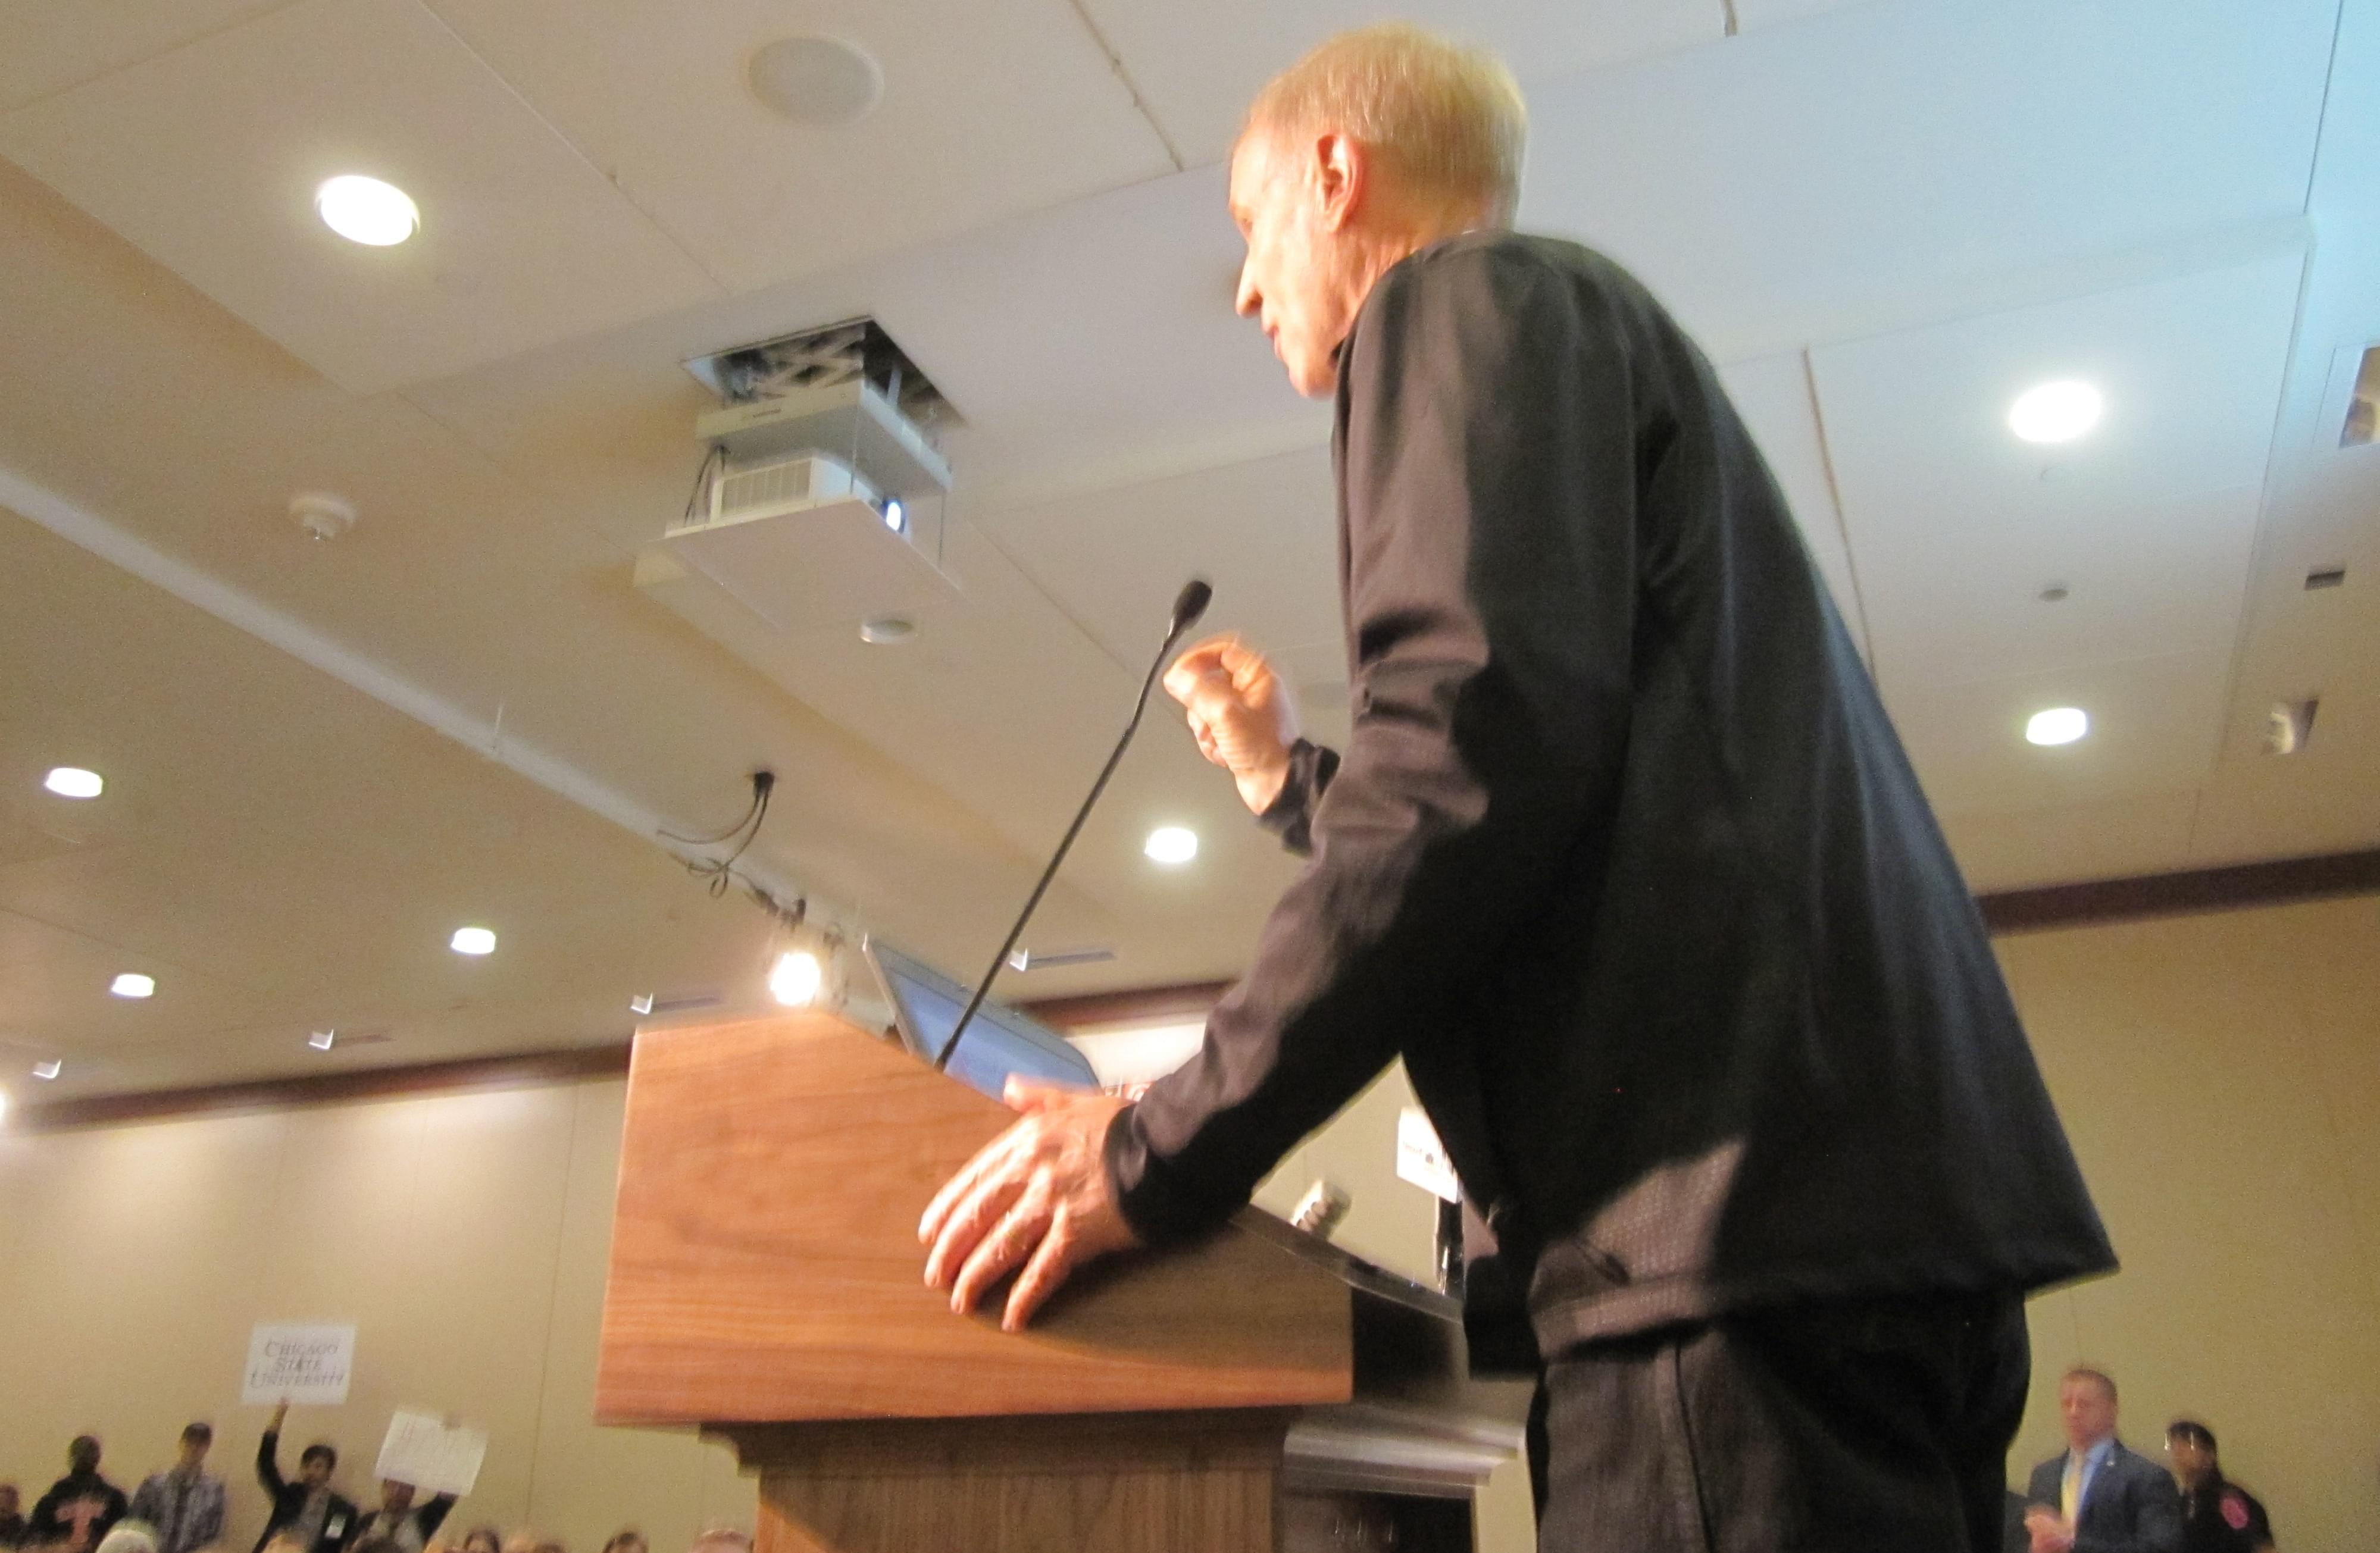 Governor Bruce Rauner addressing the Illinois Innovation Prize ceremony at the University of Illinois.